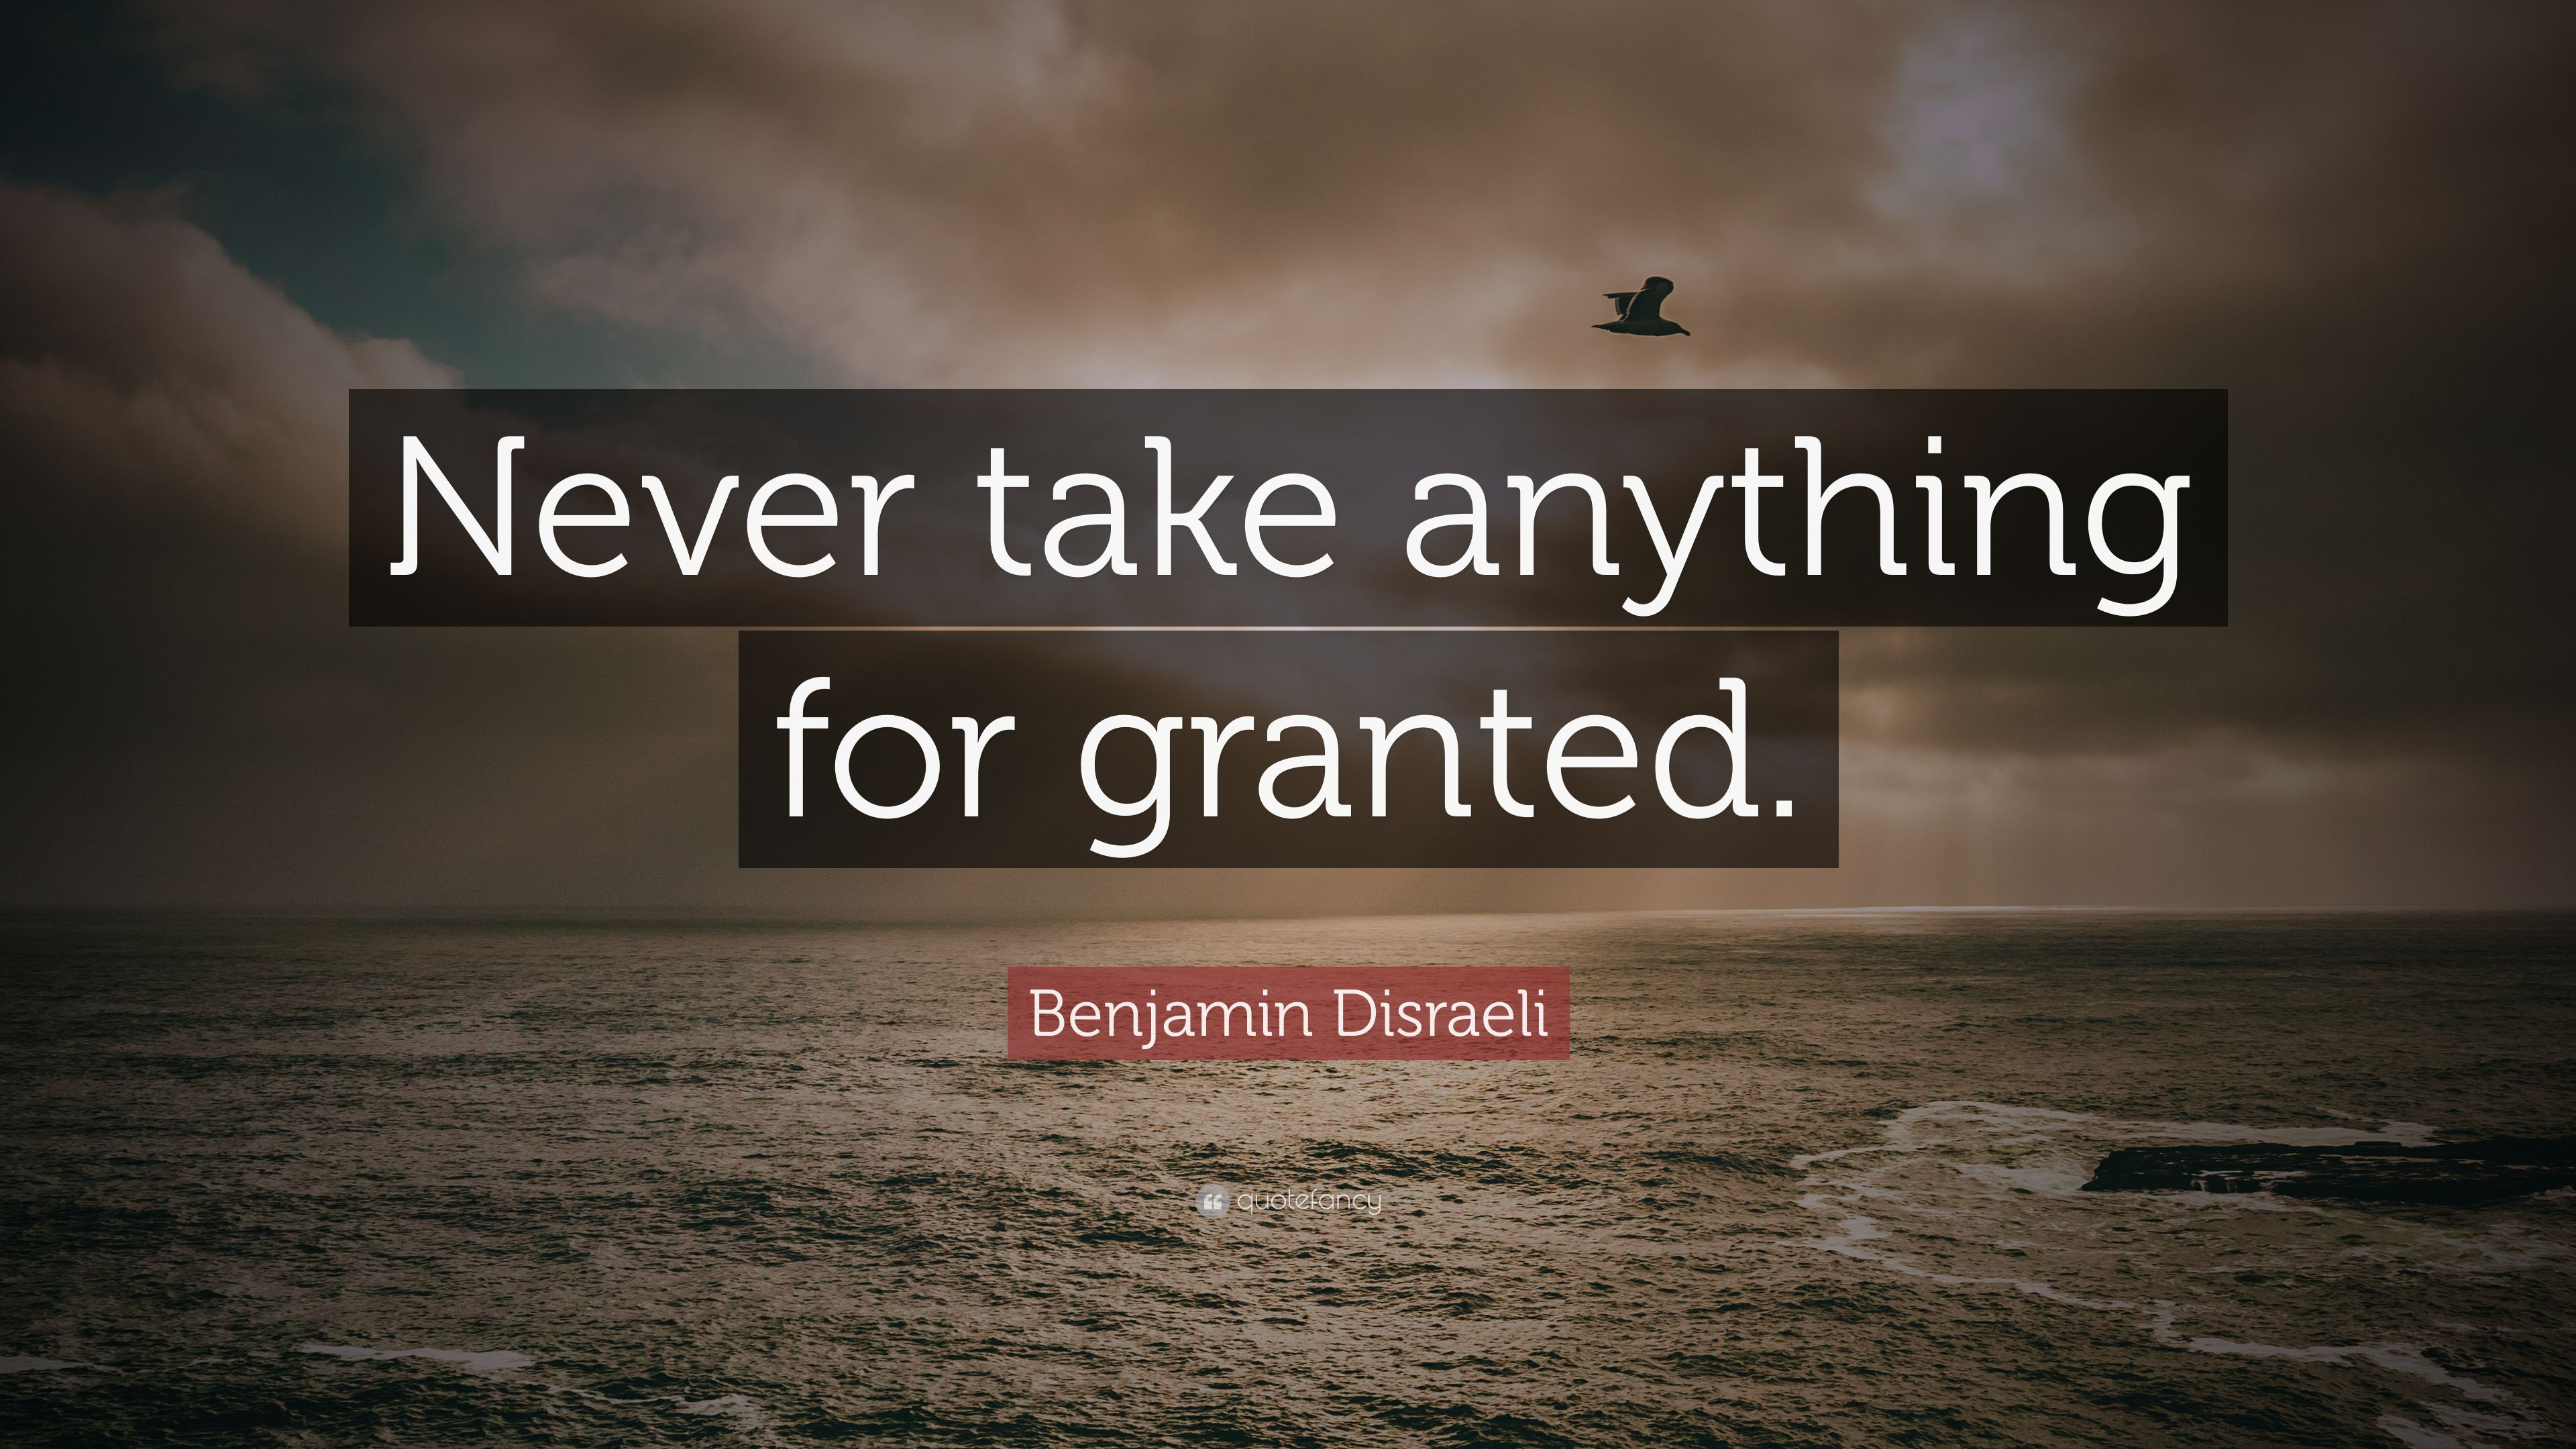 Benjamin Disraeli Quote: Never take anything for granted